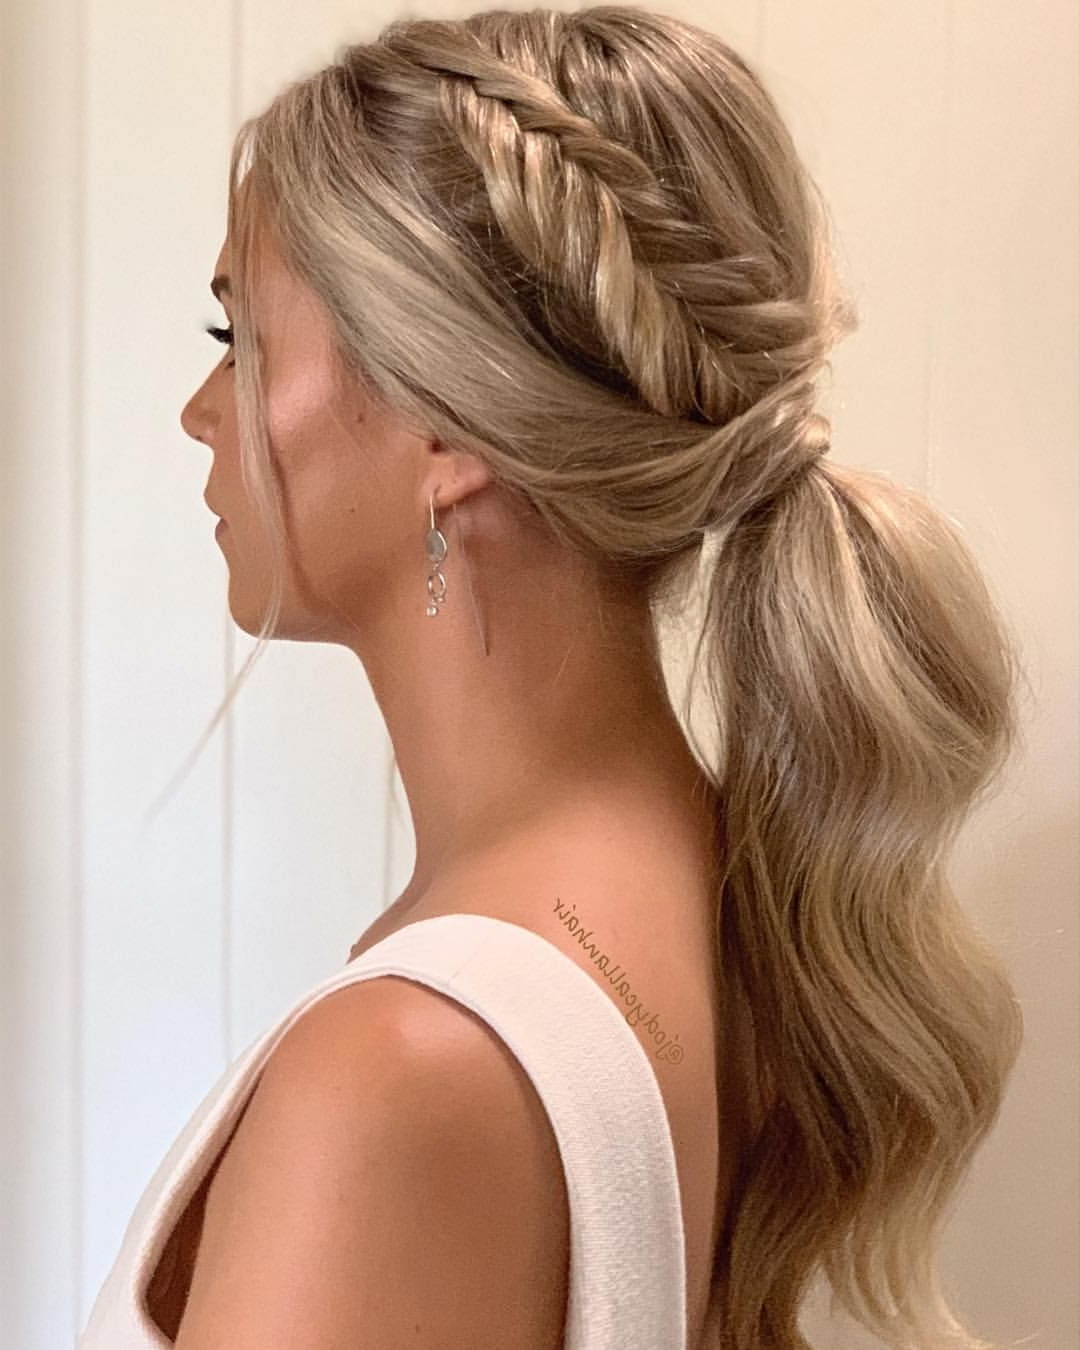 Ponytail + Fishtail Braid ✨ Bridesmaid Hair Inspo Intended For Current Ponytail Fishtail Braid Hairstyles (Gallery 1 of 20)